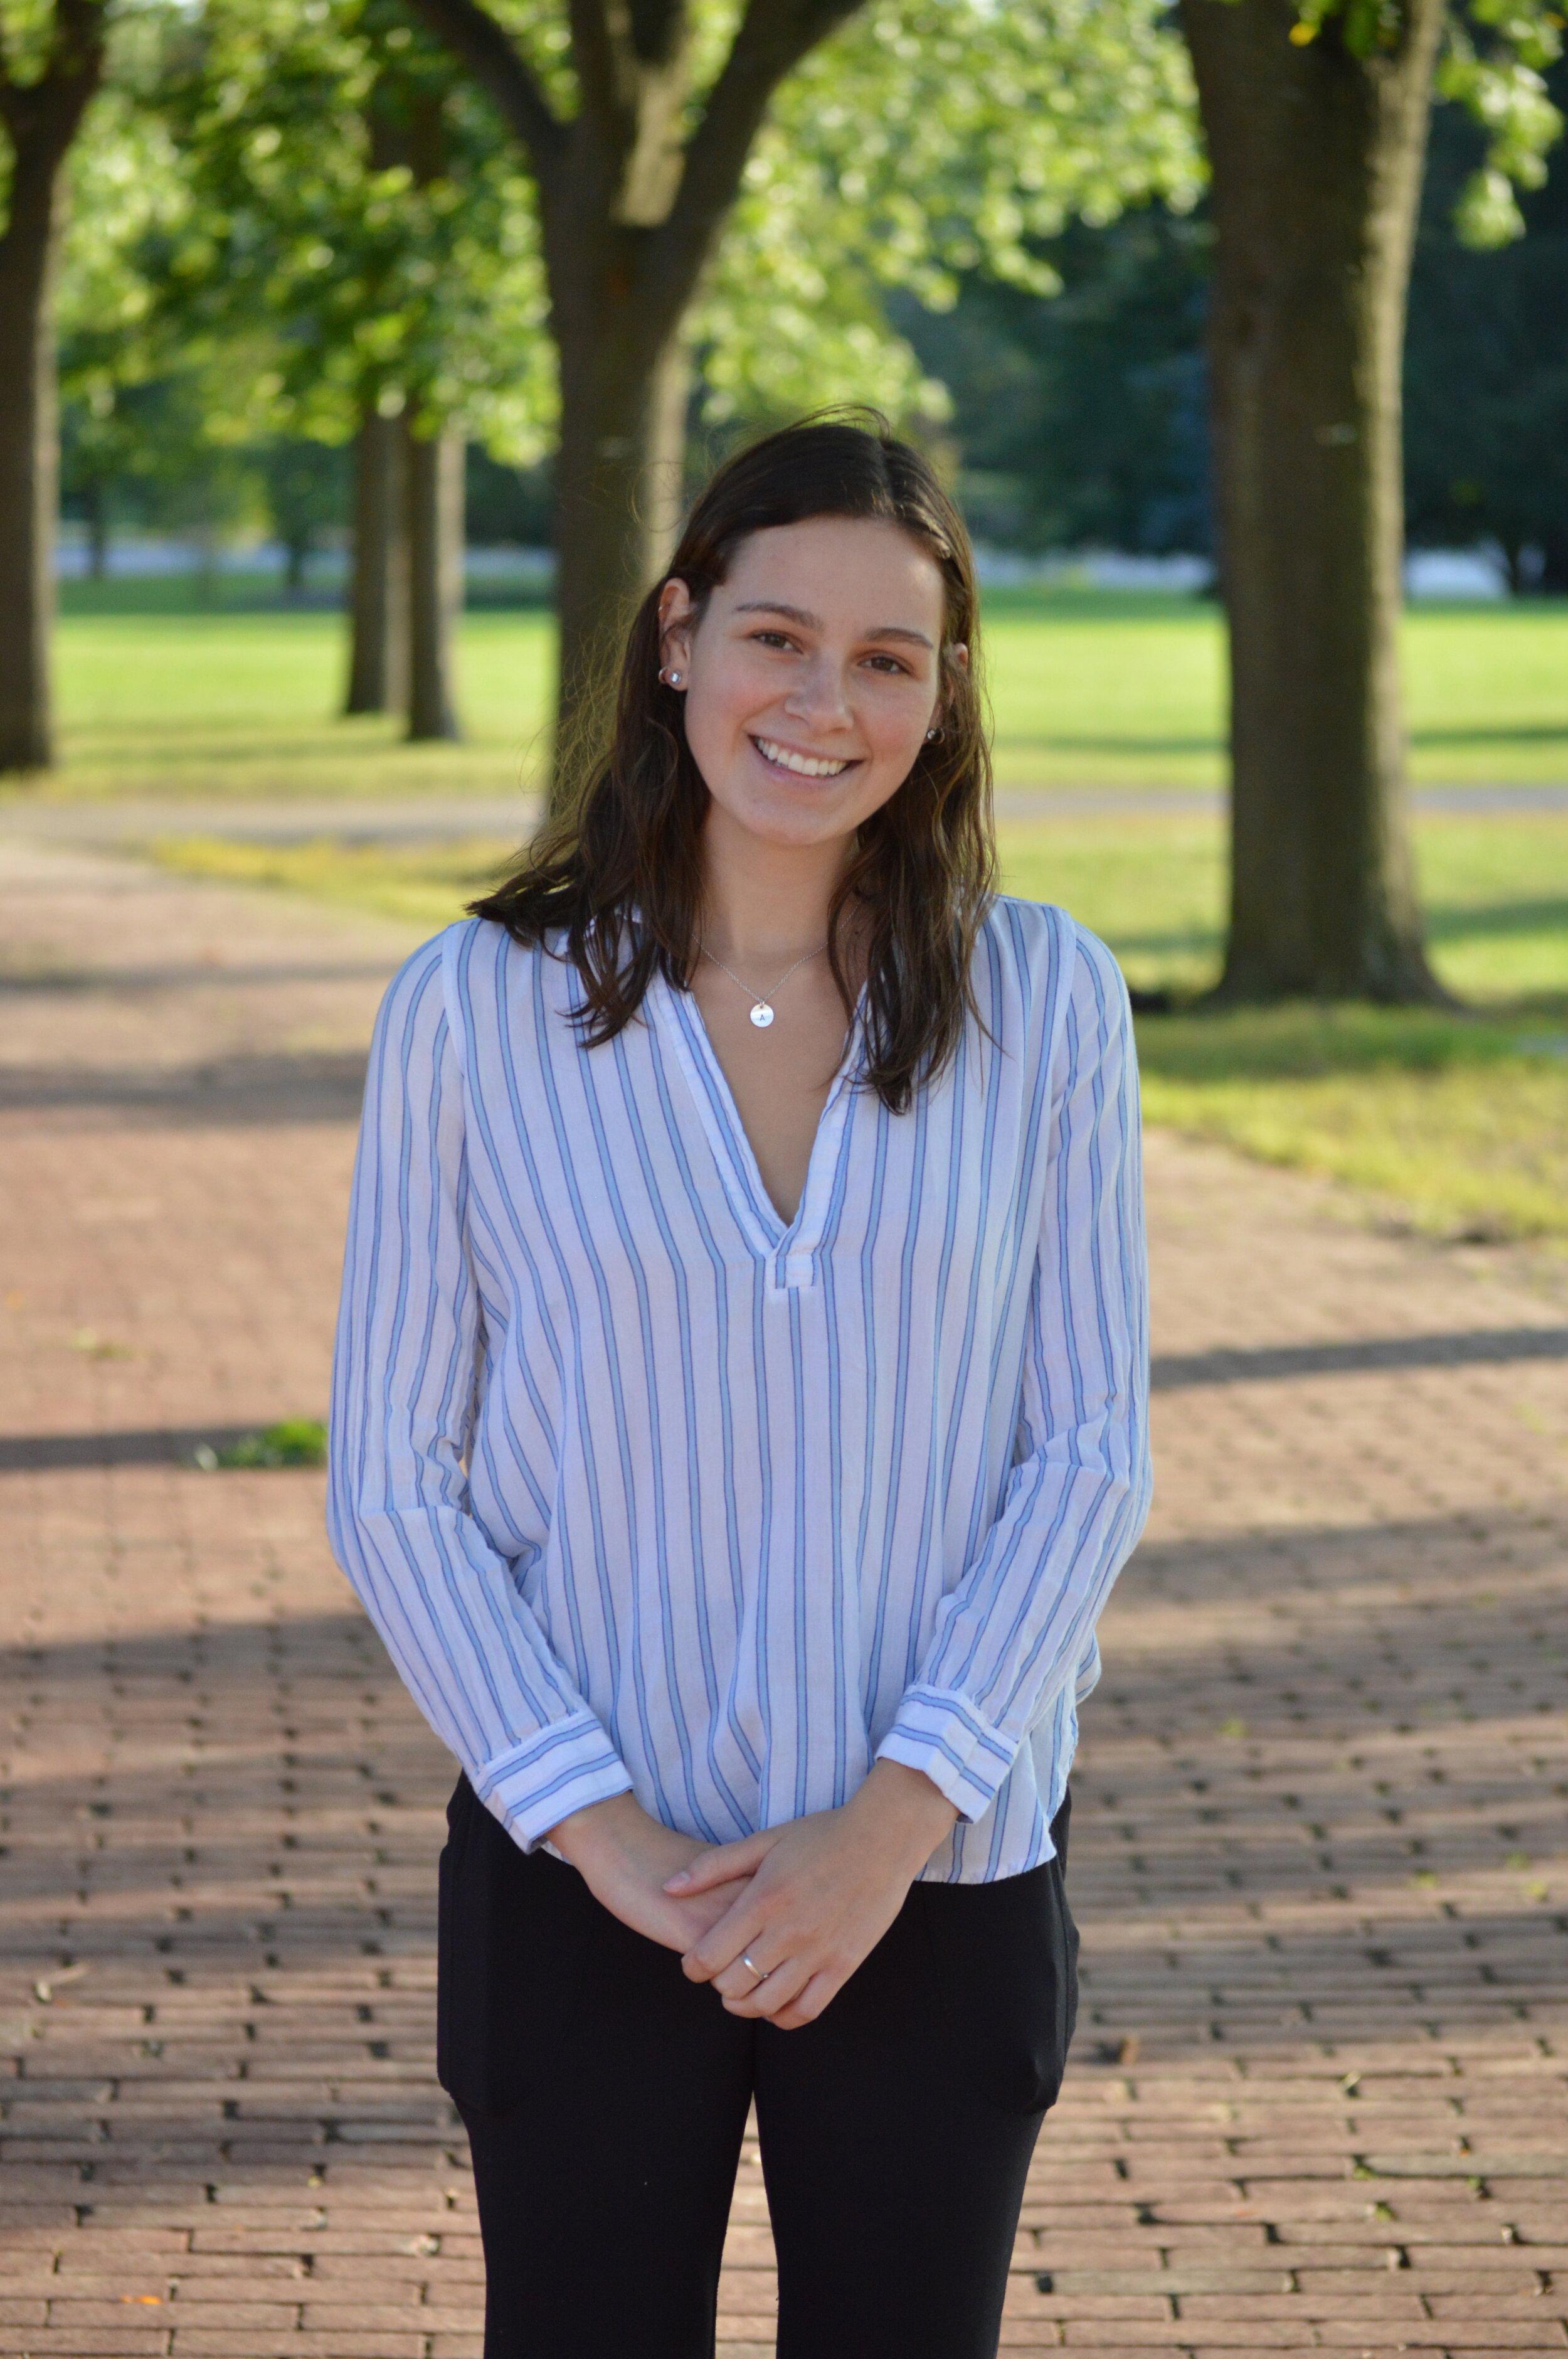 """Social Media coordinator - Name: Alexandra KonopaskiProgram: 3rd Year Accounting3 favourite things: Soccer, Shopping, Mac and CheeseFavourite TED Talk: """"What Makes a Good Life? Lessons from the Longest Study on Happiness"""" by Robert Waldinger"""